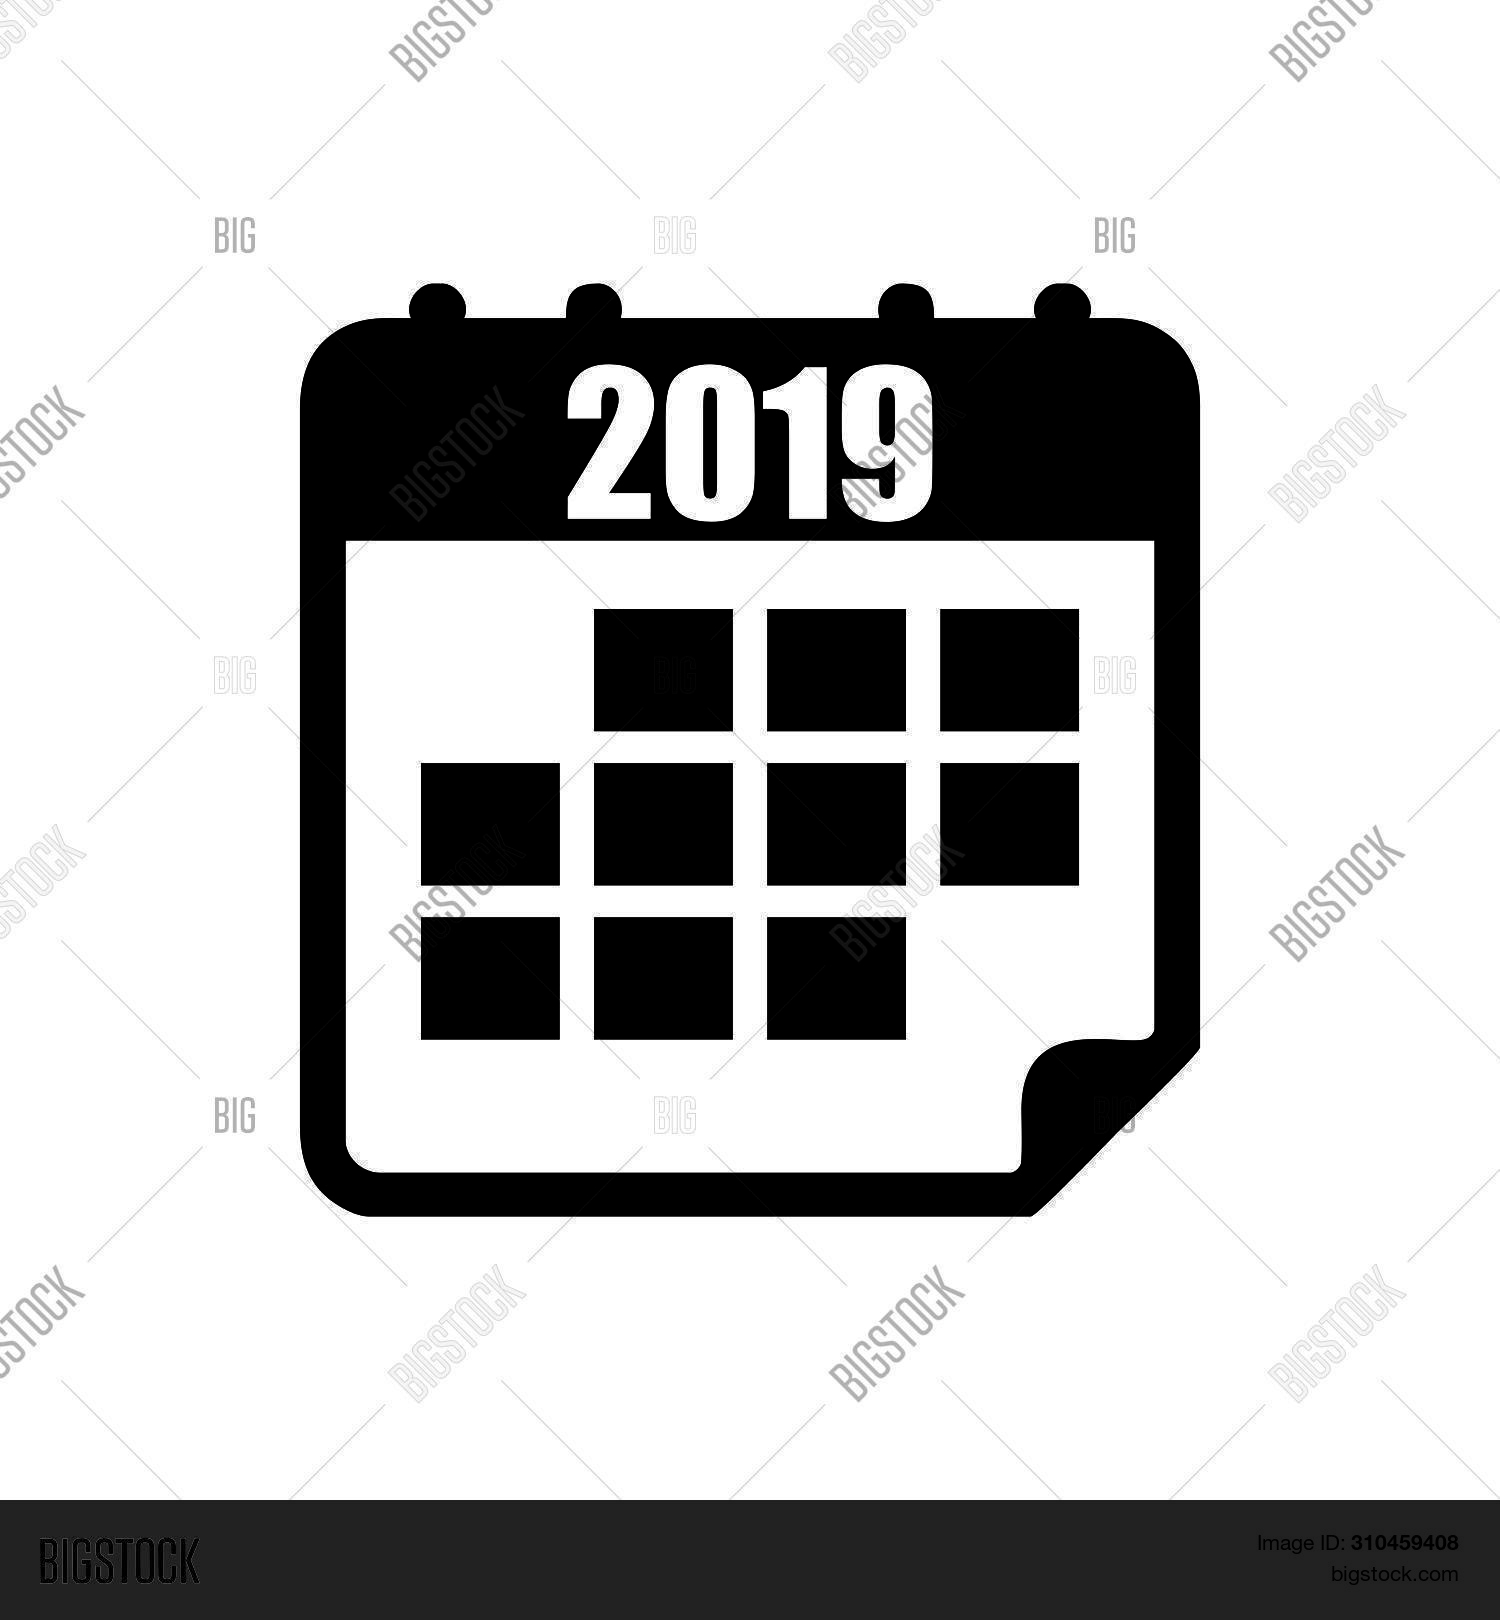 Calendar Icon 2019 Image & Photo (Free Trial) | Bigstock with regard to Calendar Icon Jpg